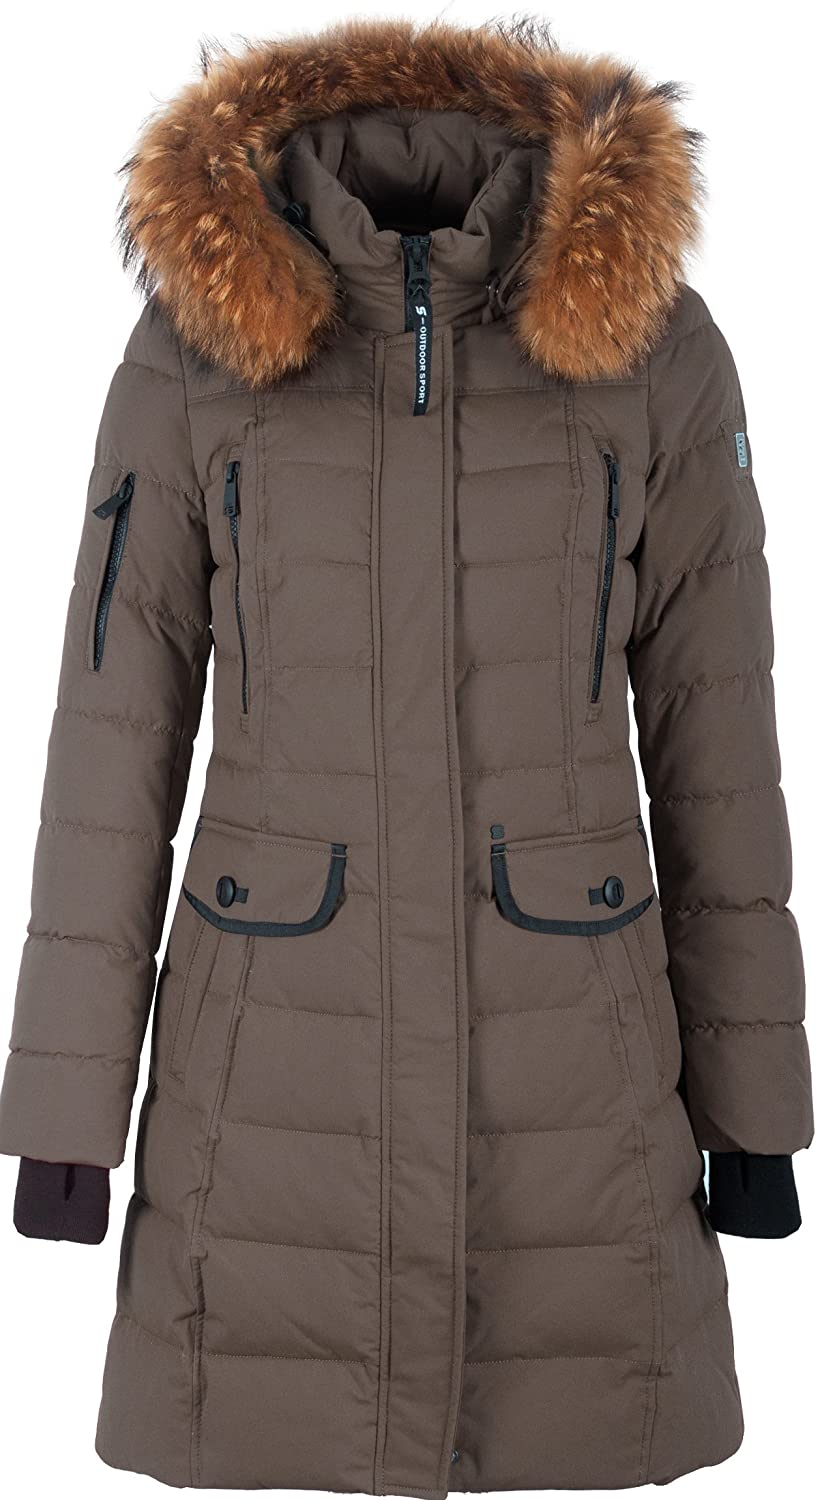 SI-V304 Damen Winterjacke Parka in Daunen-Optik